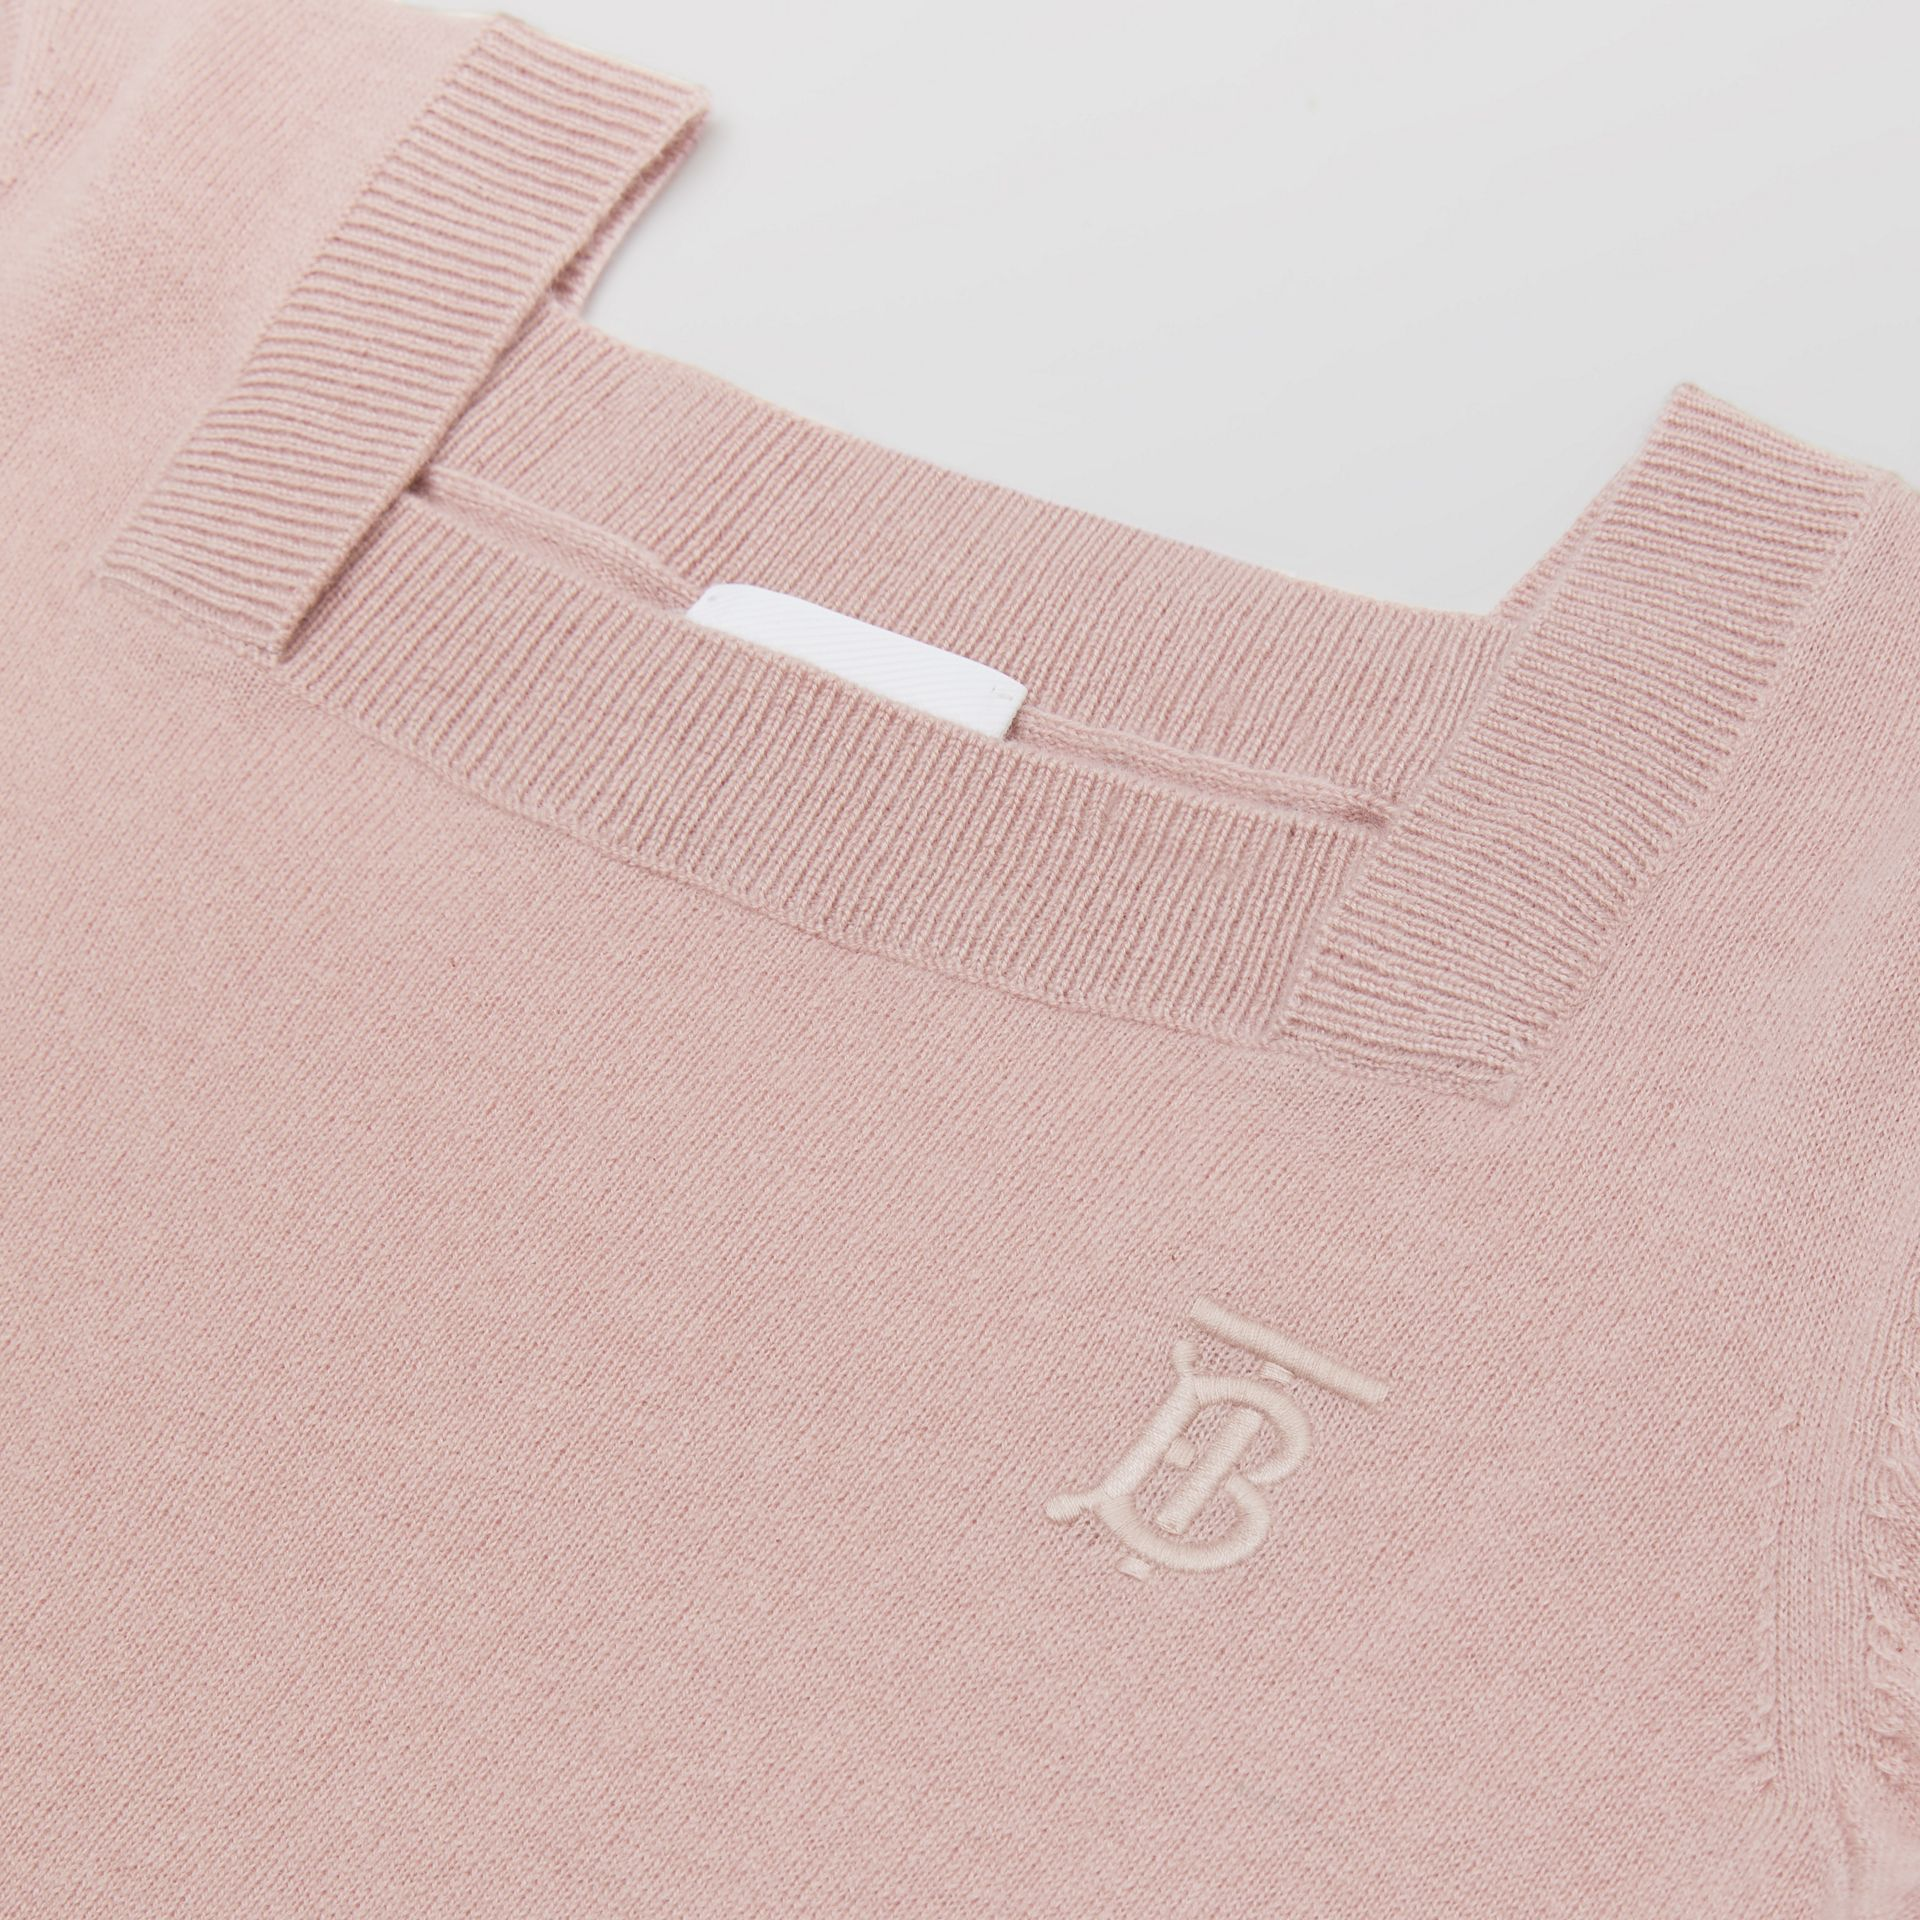 Monogram Motif Cashmere Sweater Dress in Lavender Pink | Burberry Hong Kong S.A.R - gallery image 1